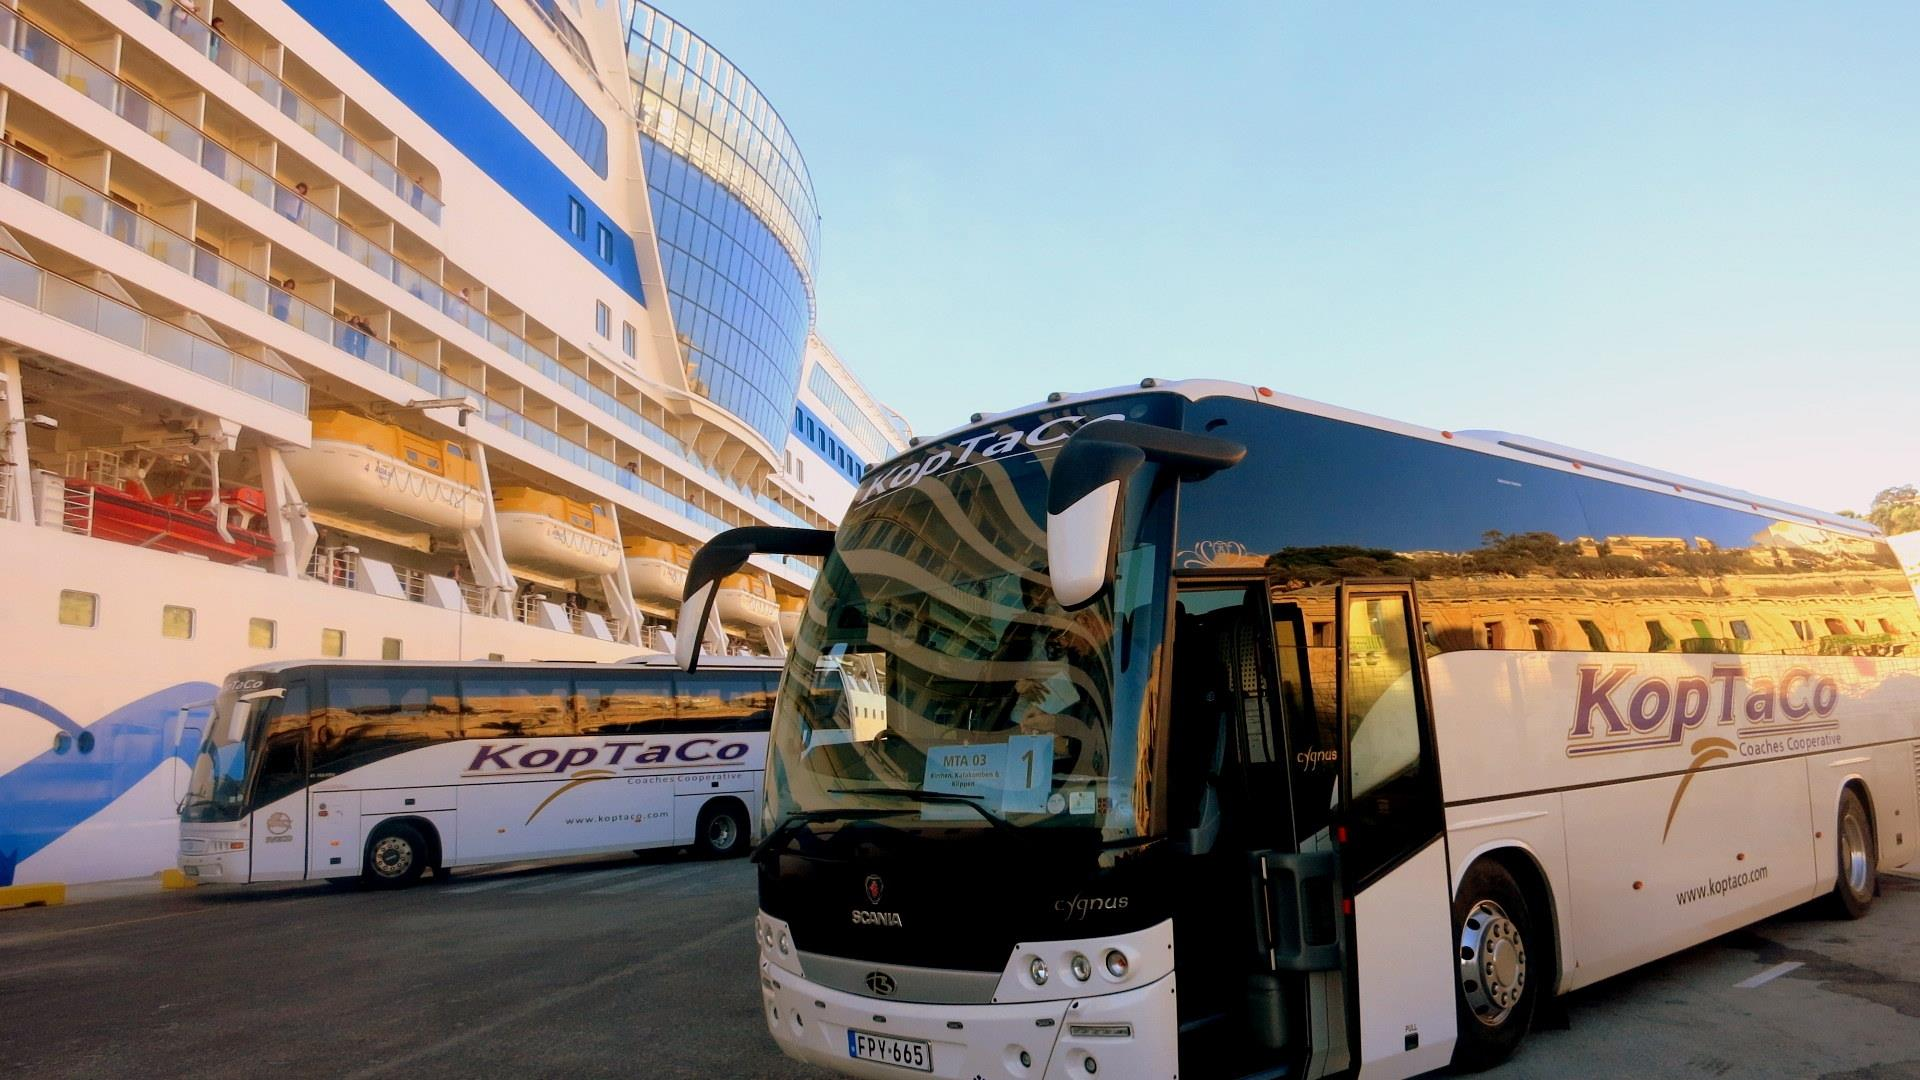 koptaco transport company cruise bus transfers tours